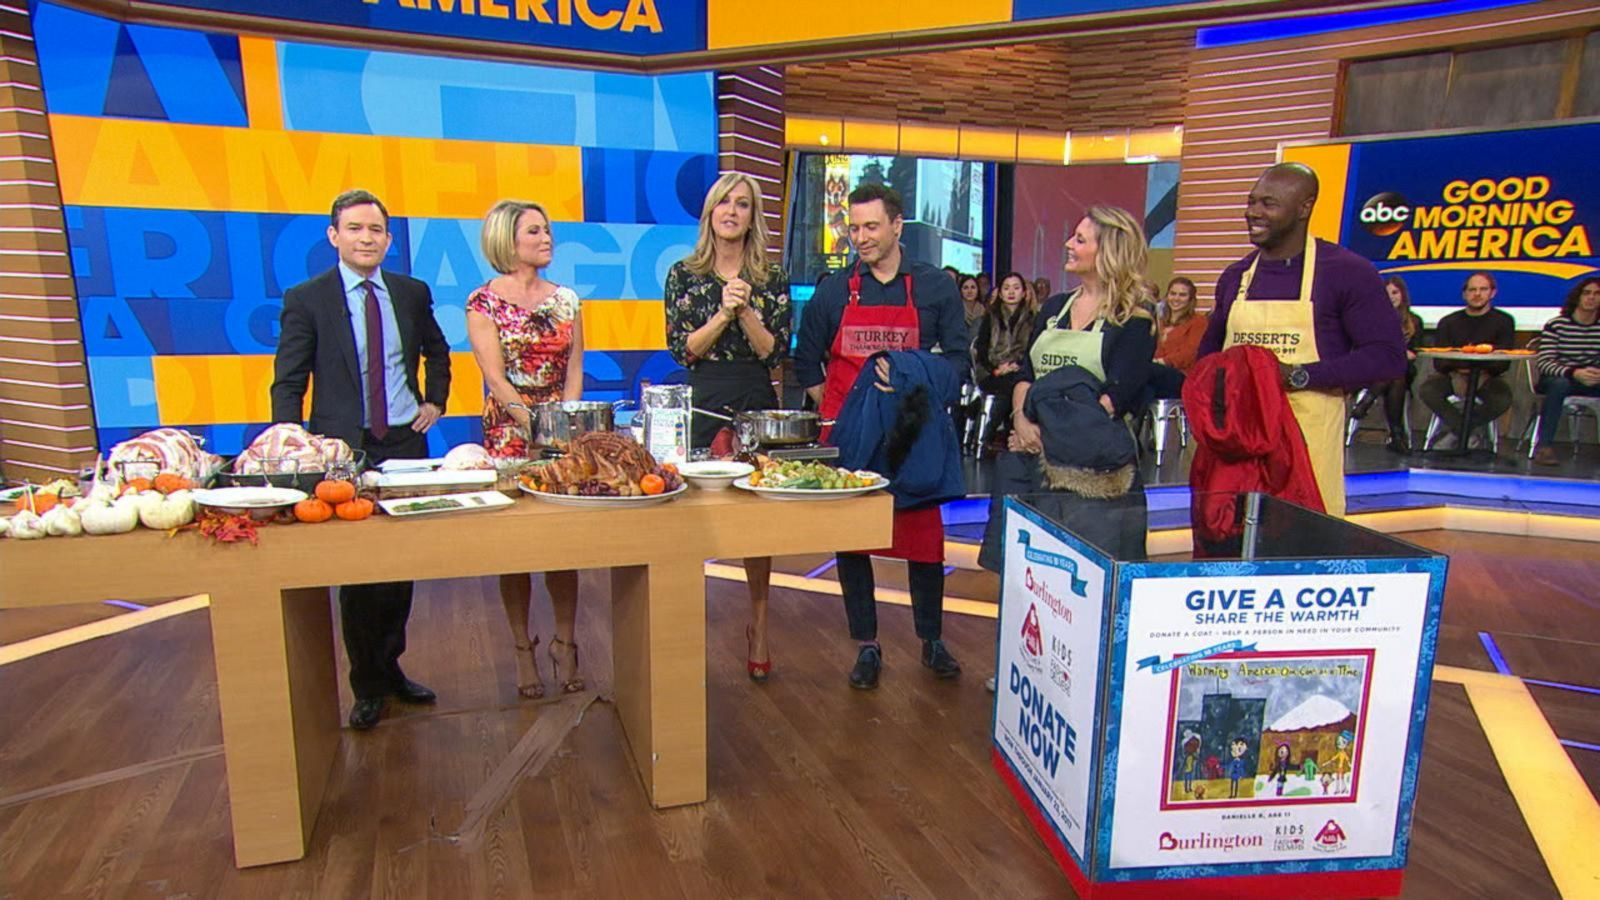 VIDEO: All-Star Celebrity Chefs Donate to Coat Drive